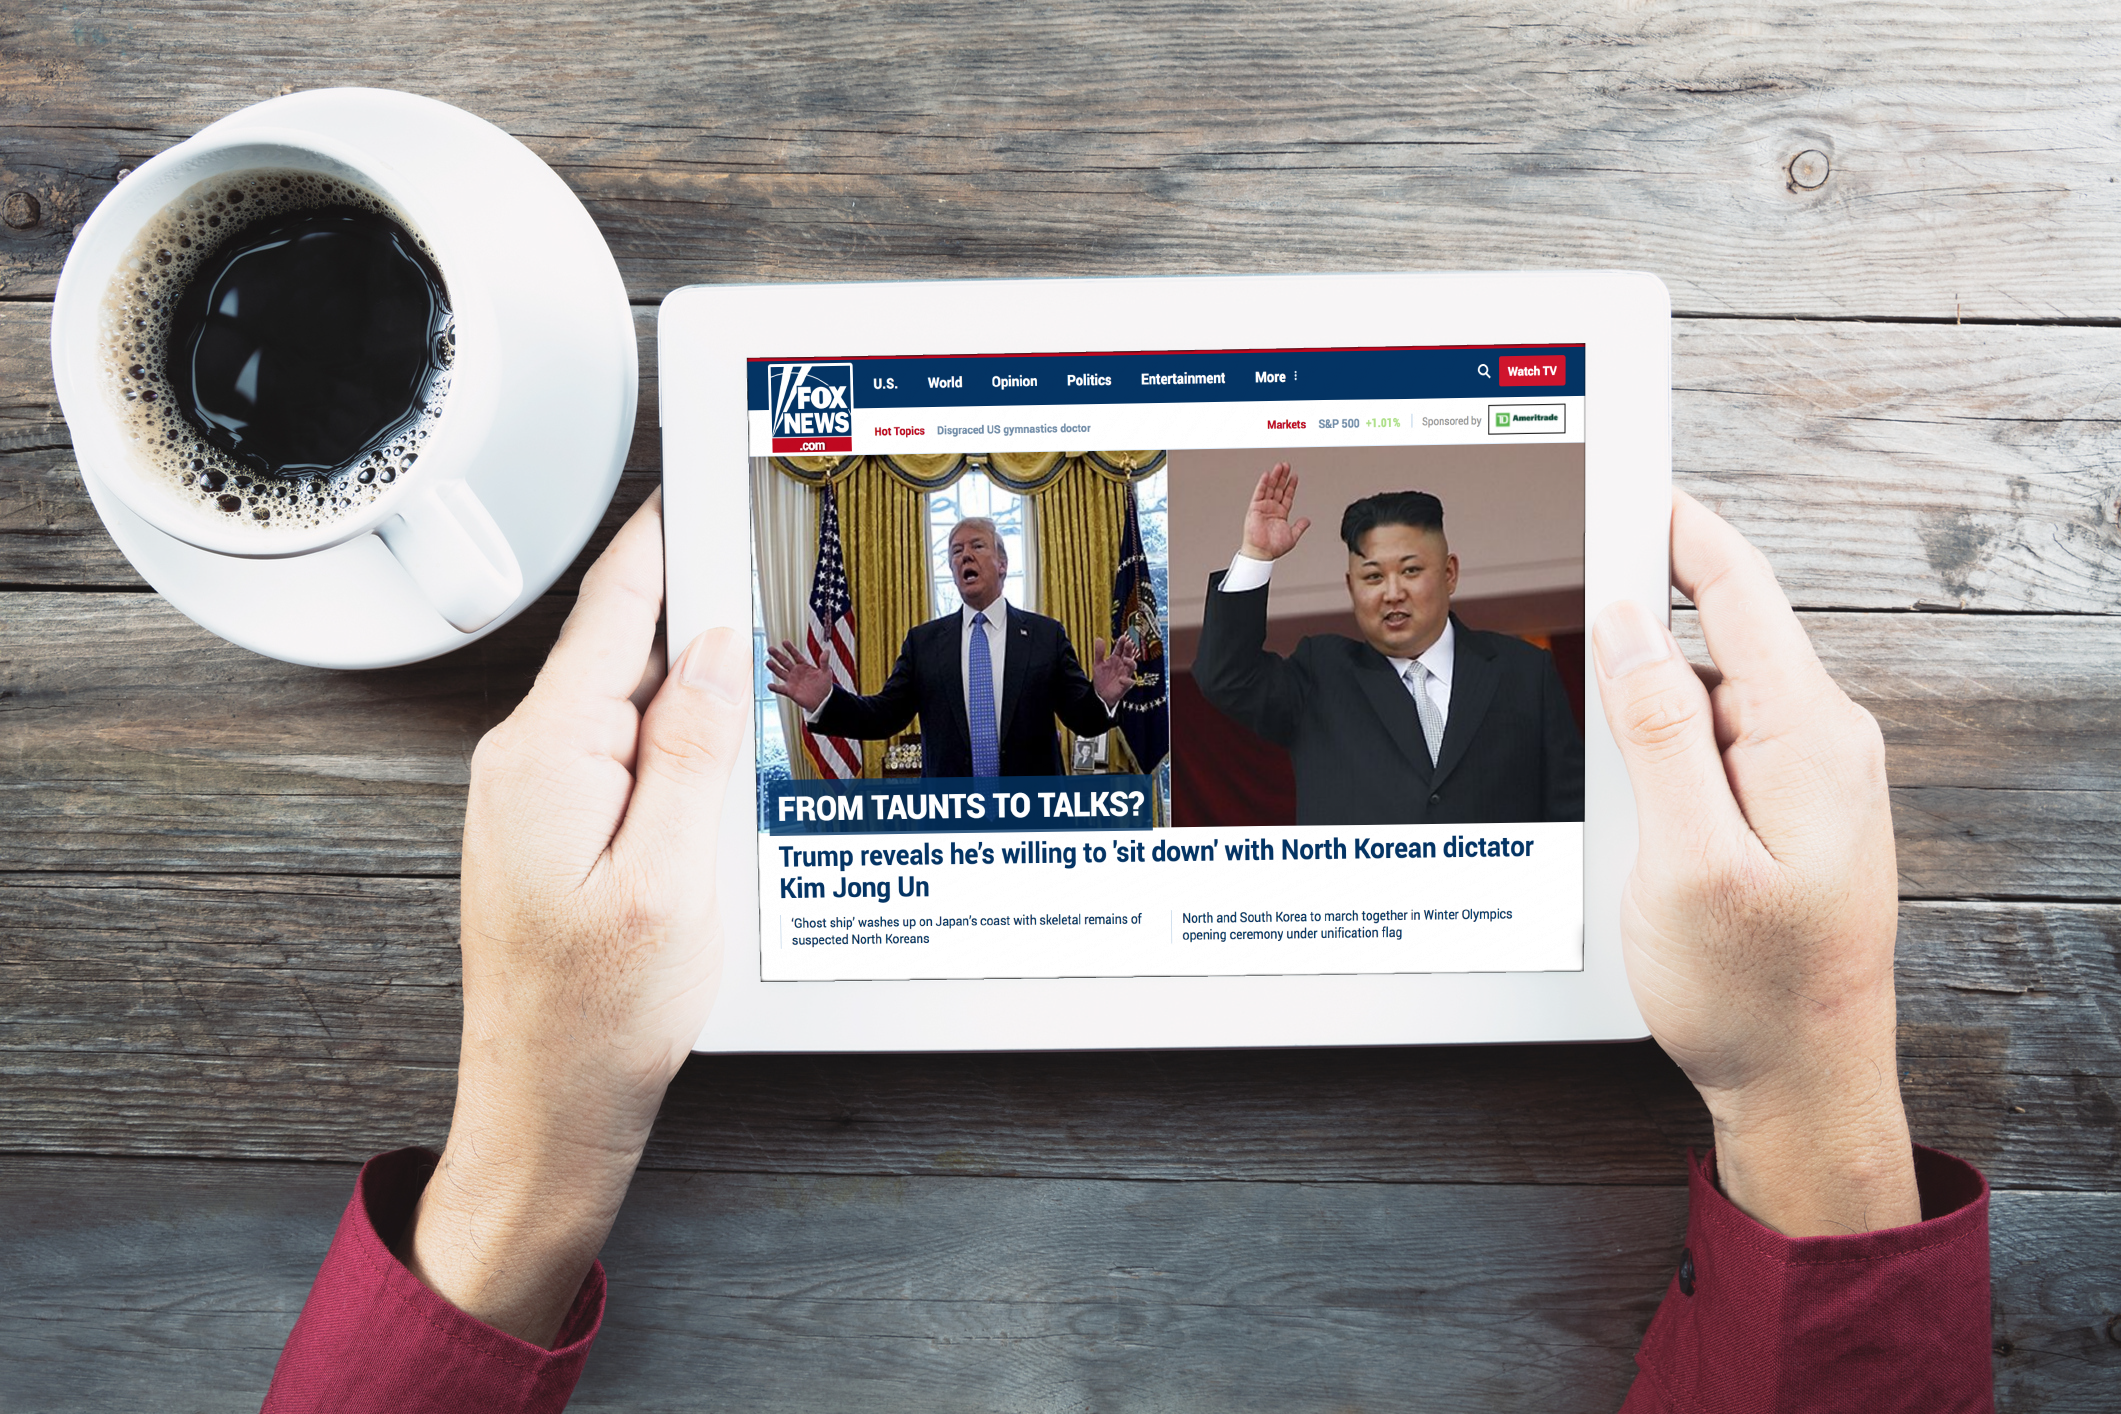 Who Gets The Most Traffic Among Conservative Websites?